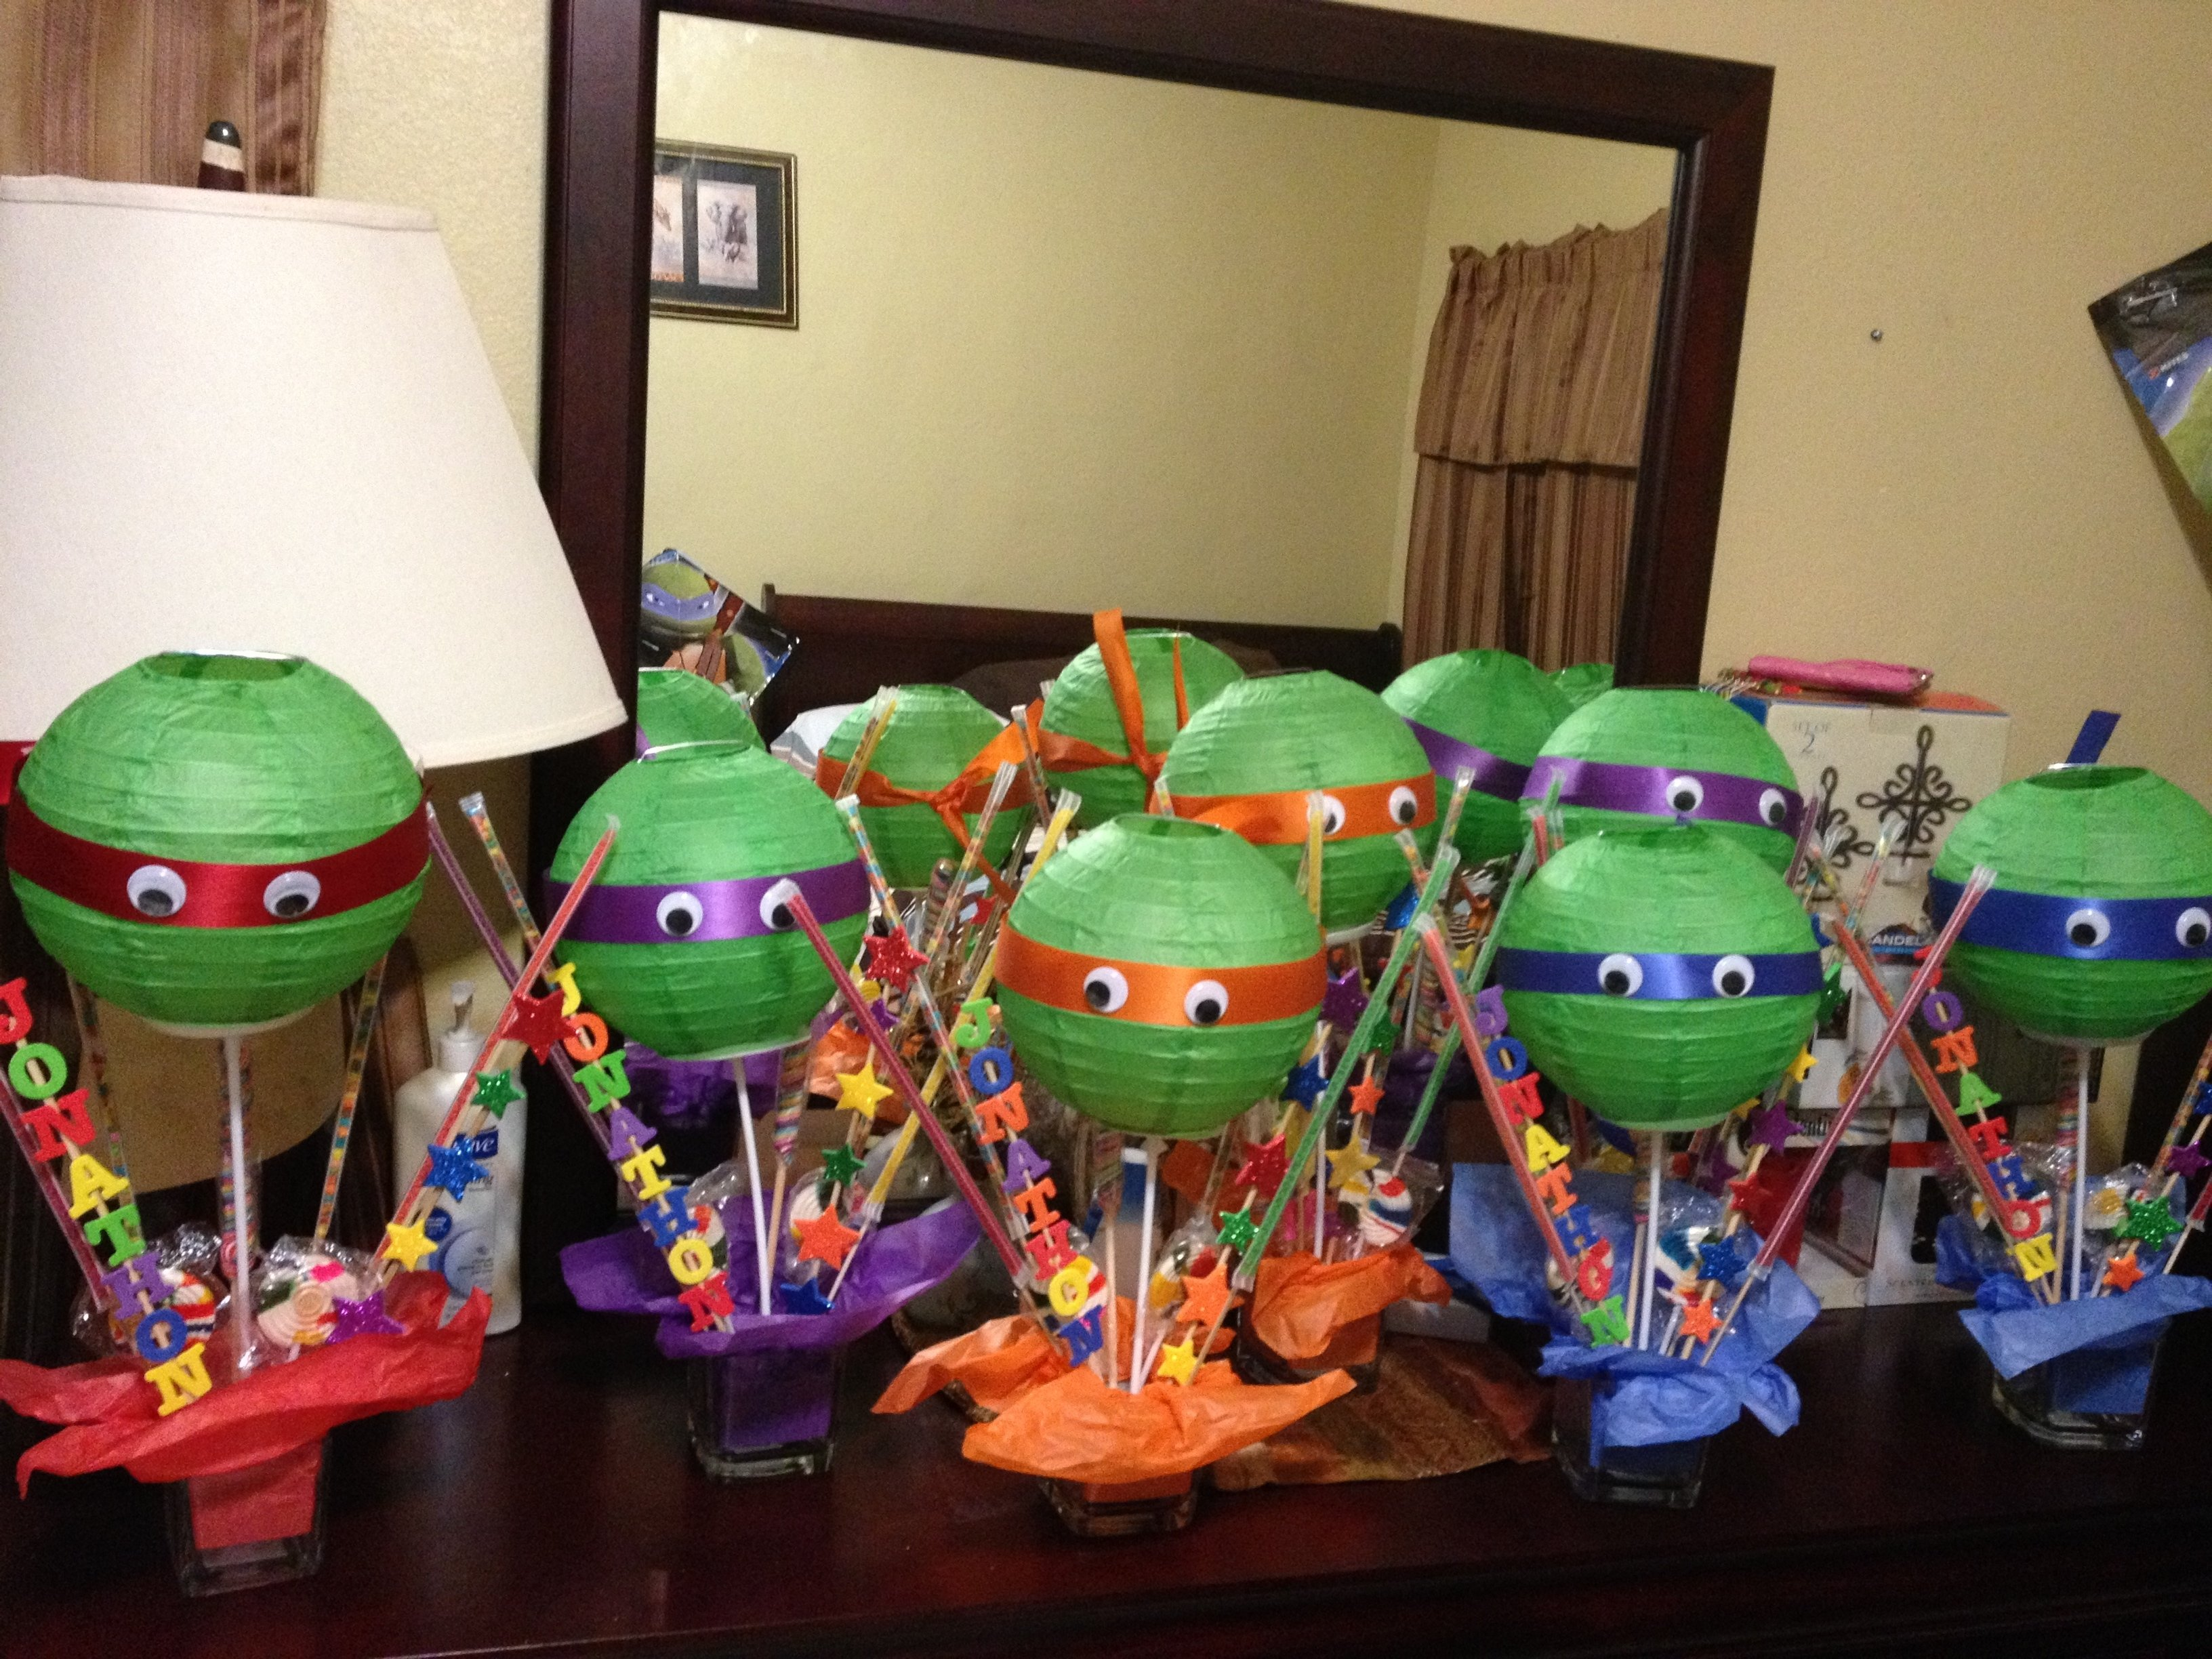 10 Best Ninja Turtle Party Decoration Ideas furniture fascinating simple christmas table decoration ideas blue 2020